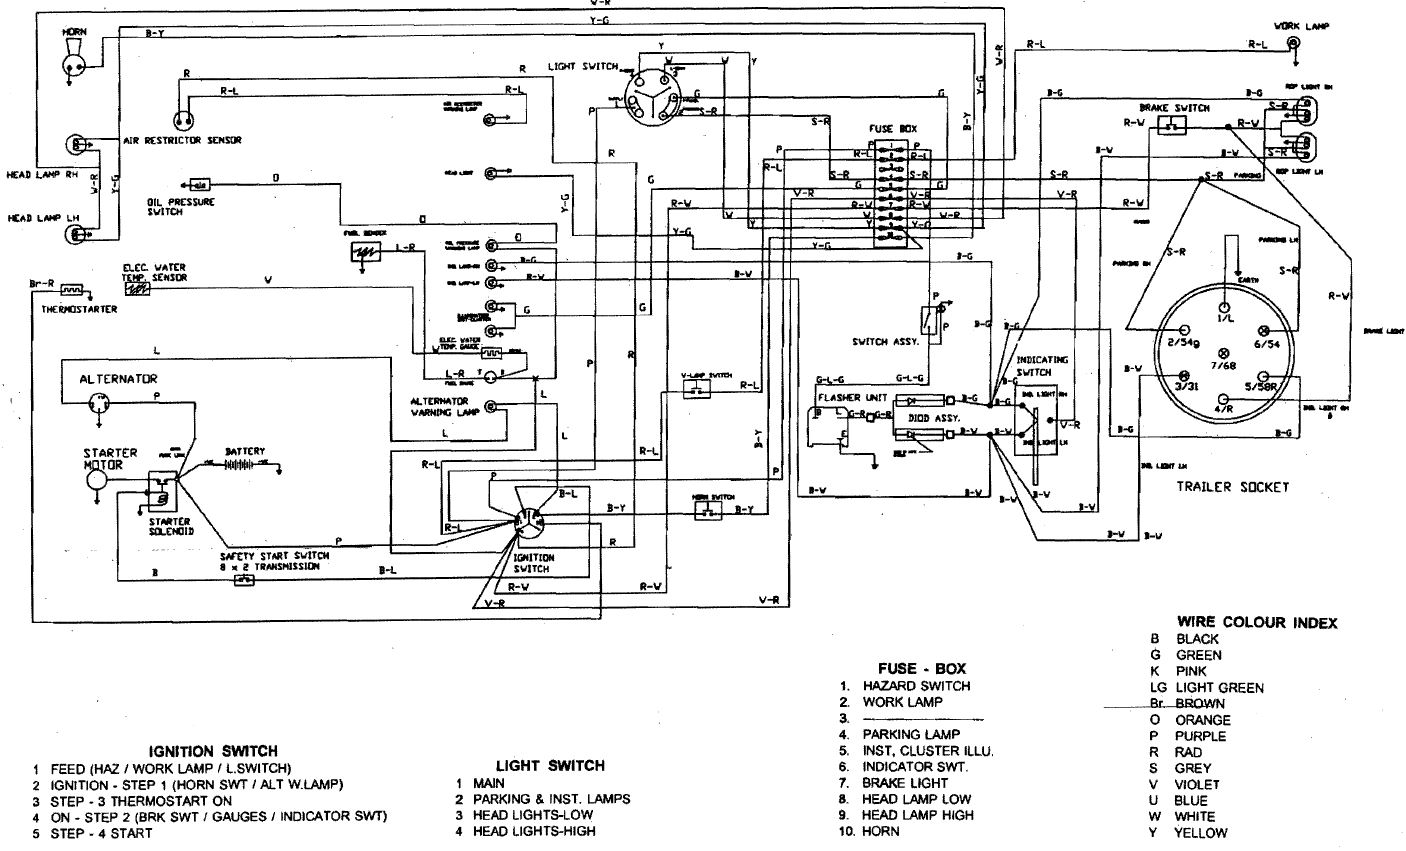 hight resolution of foton tractor wiring diagram wiring diagram todaysfoton tractor wiring diagram simple wiring diagram schema case 445d